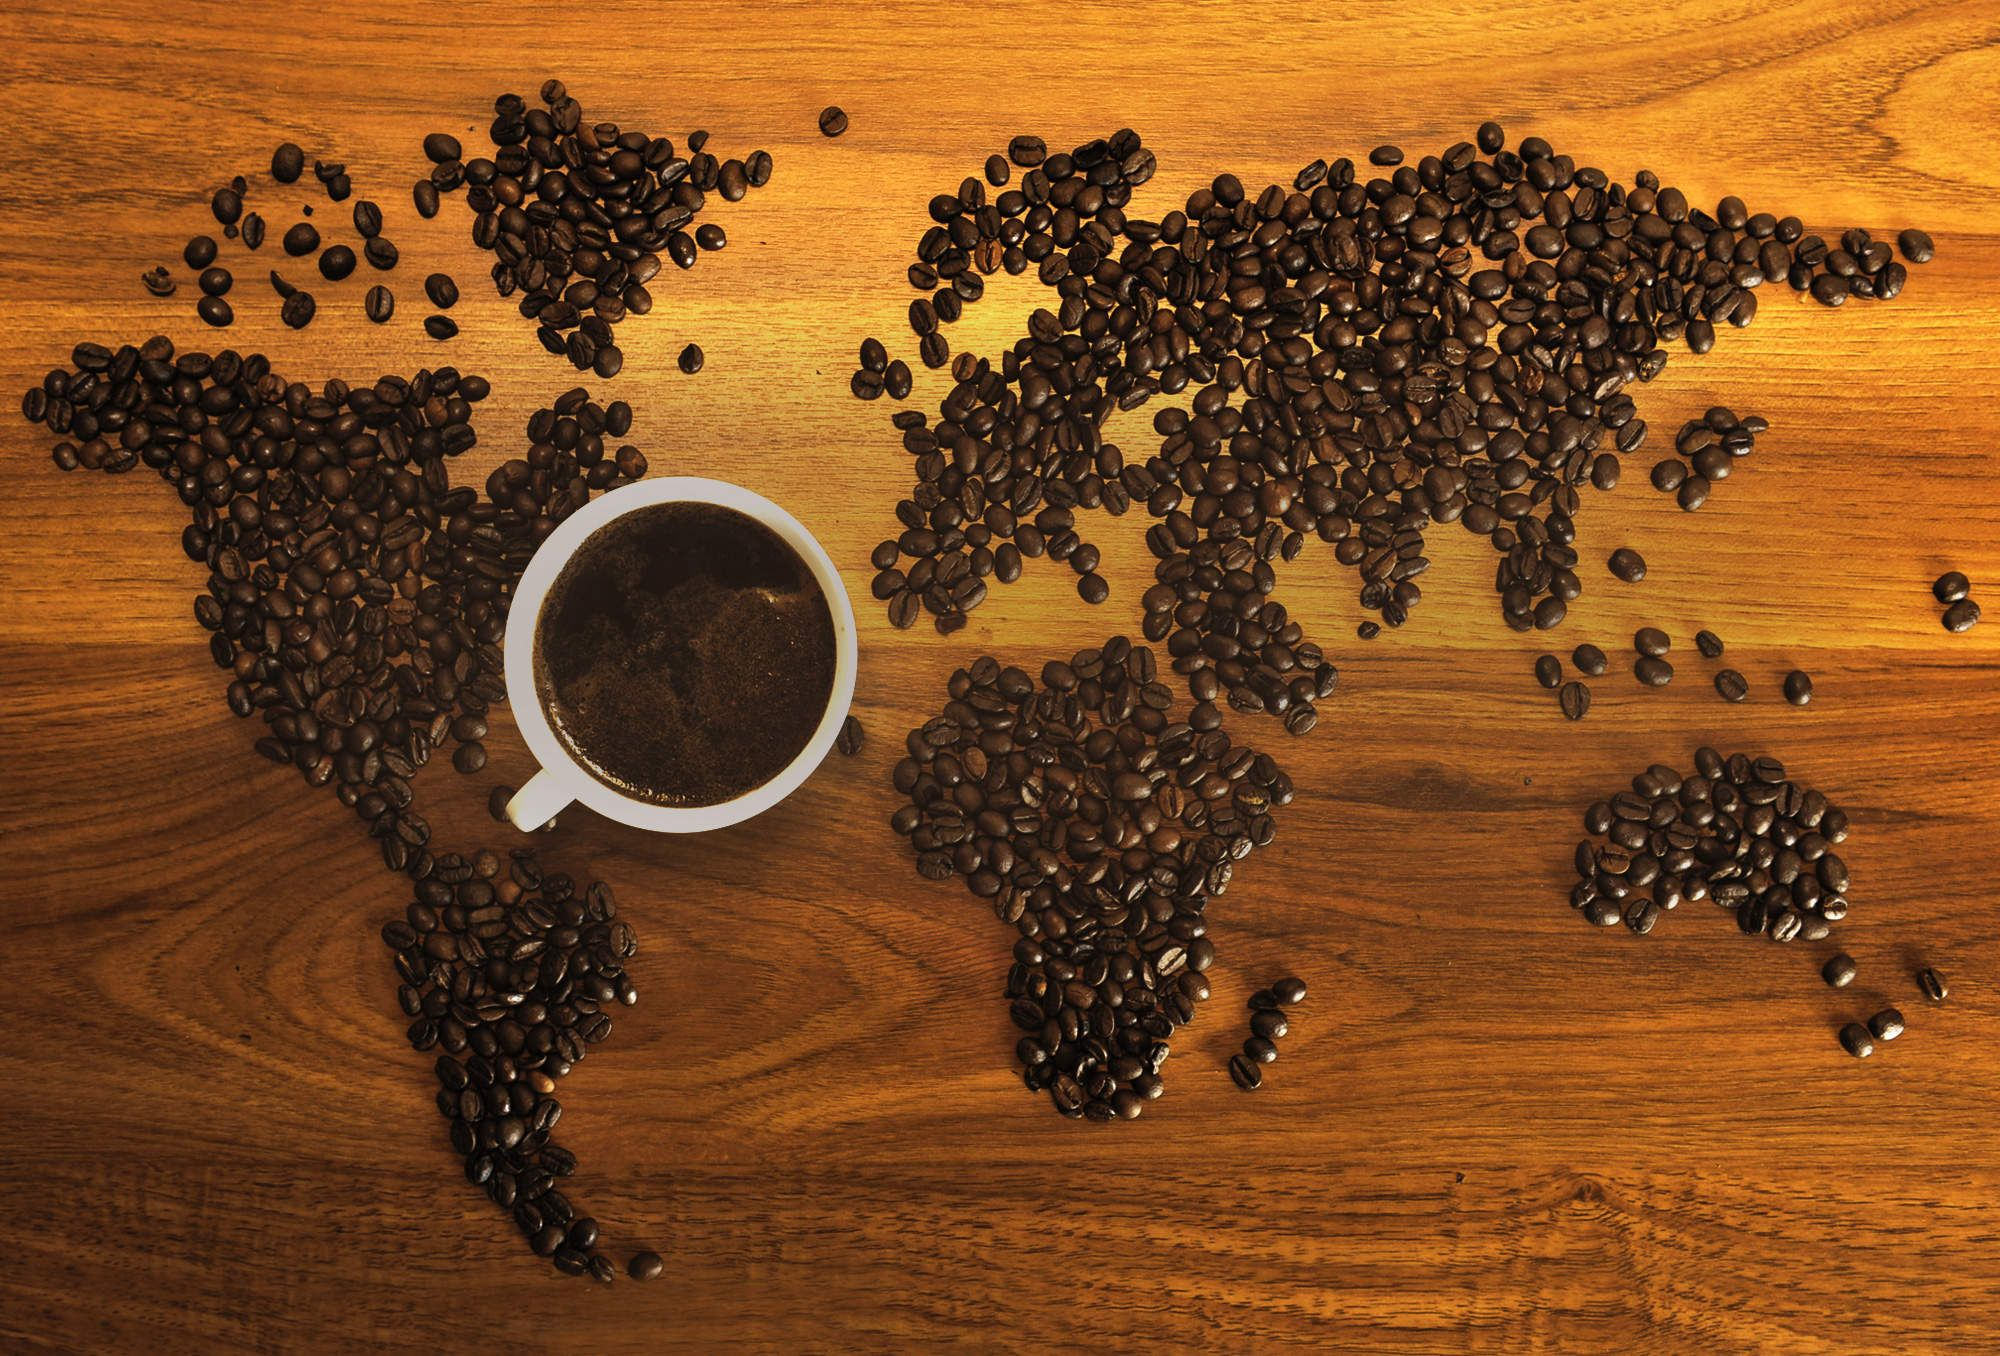 The definitive top 10 coffeegrowing countries in the